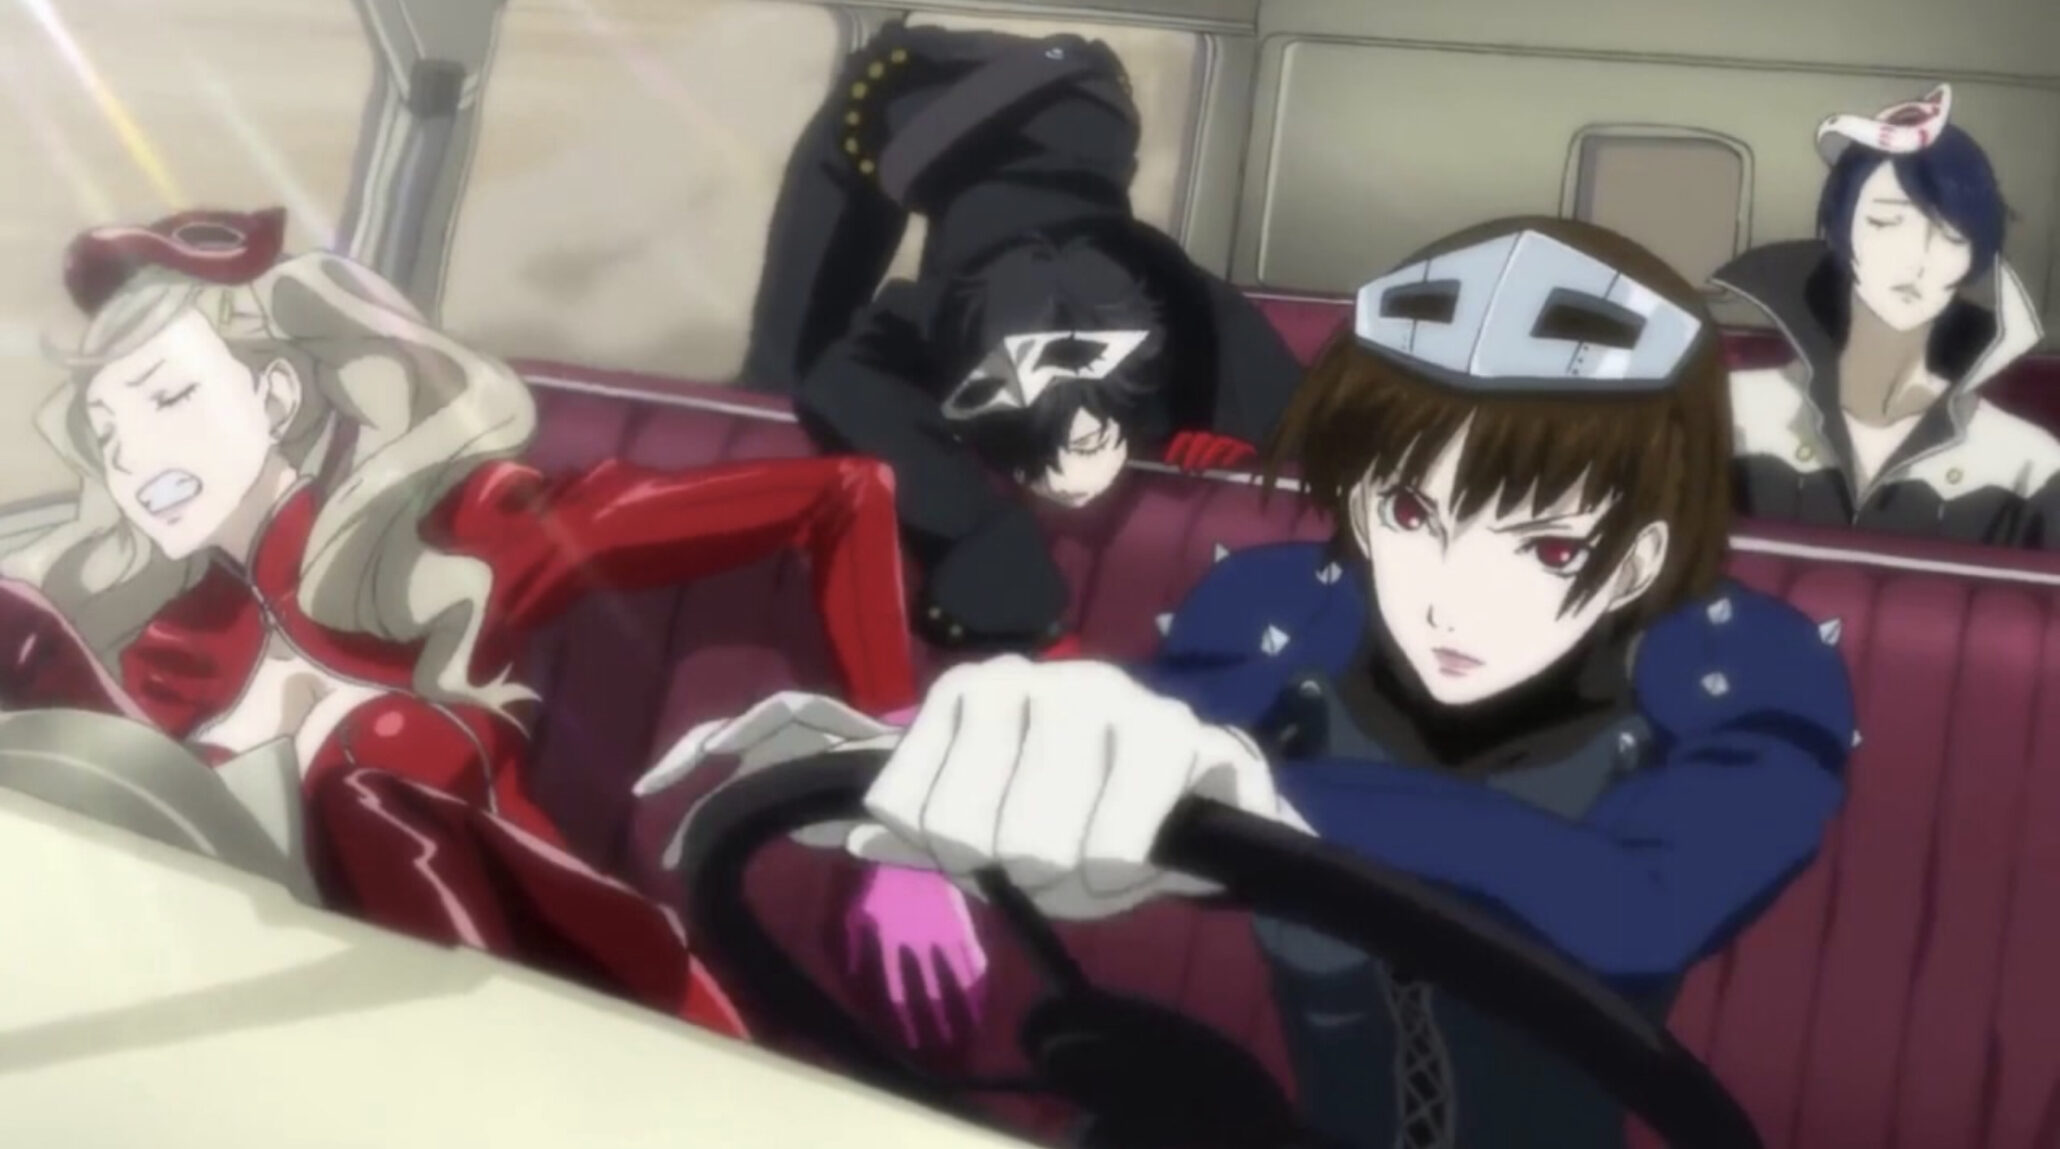 Persona 5 Royal New Gameplay Videos Showcase New Story Elements